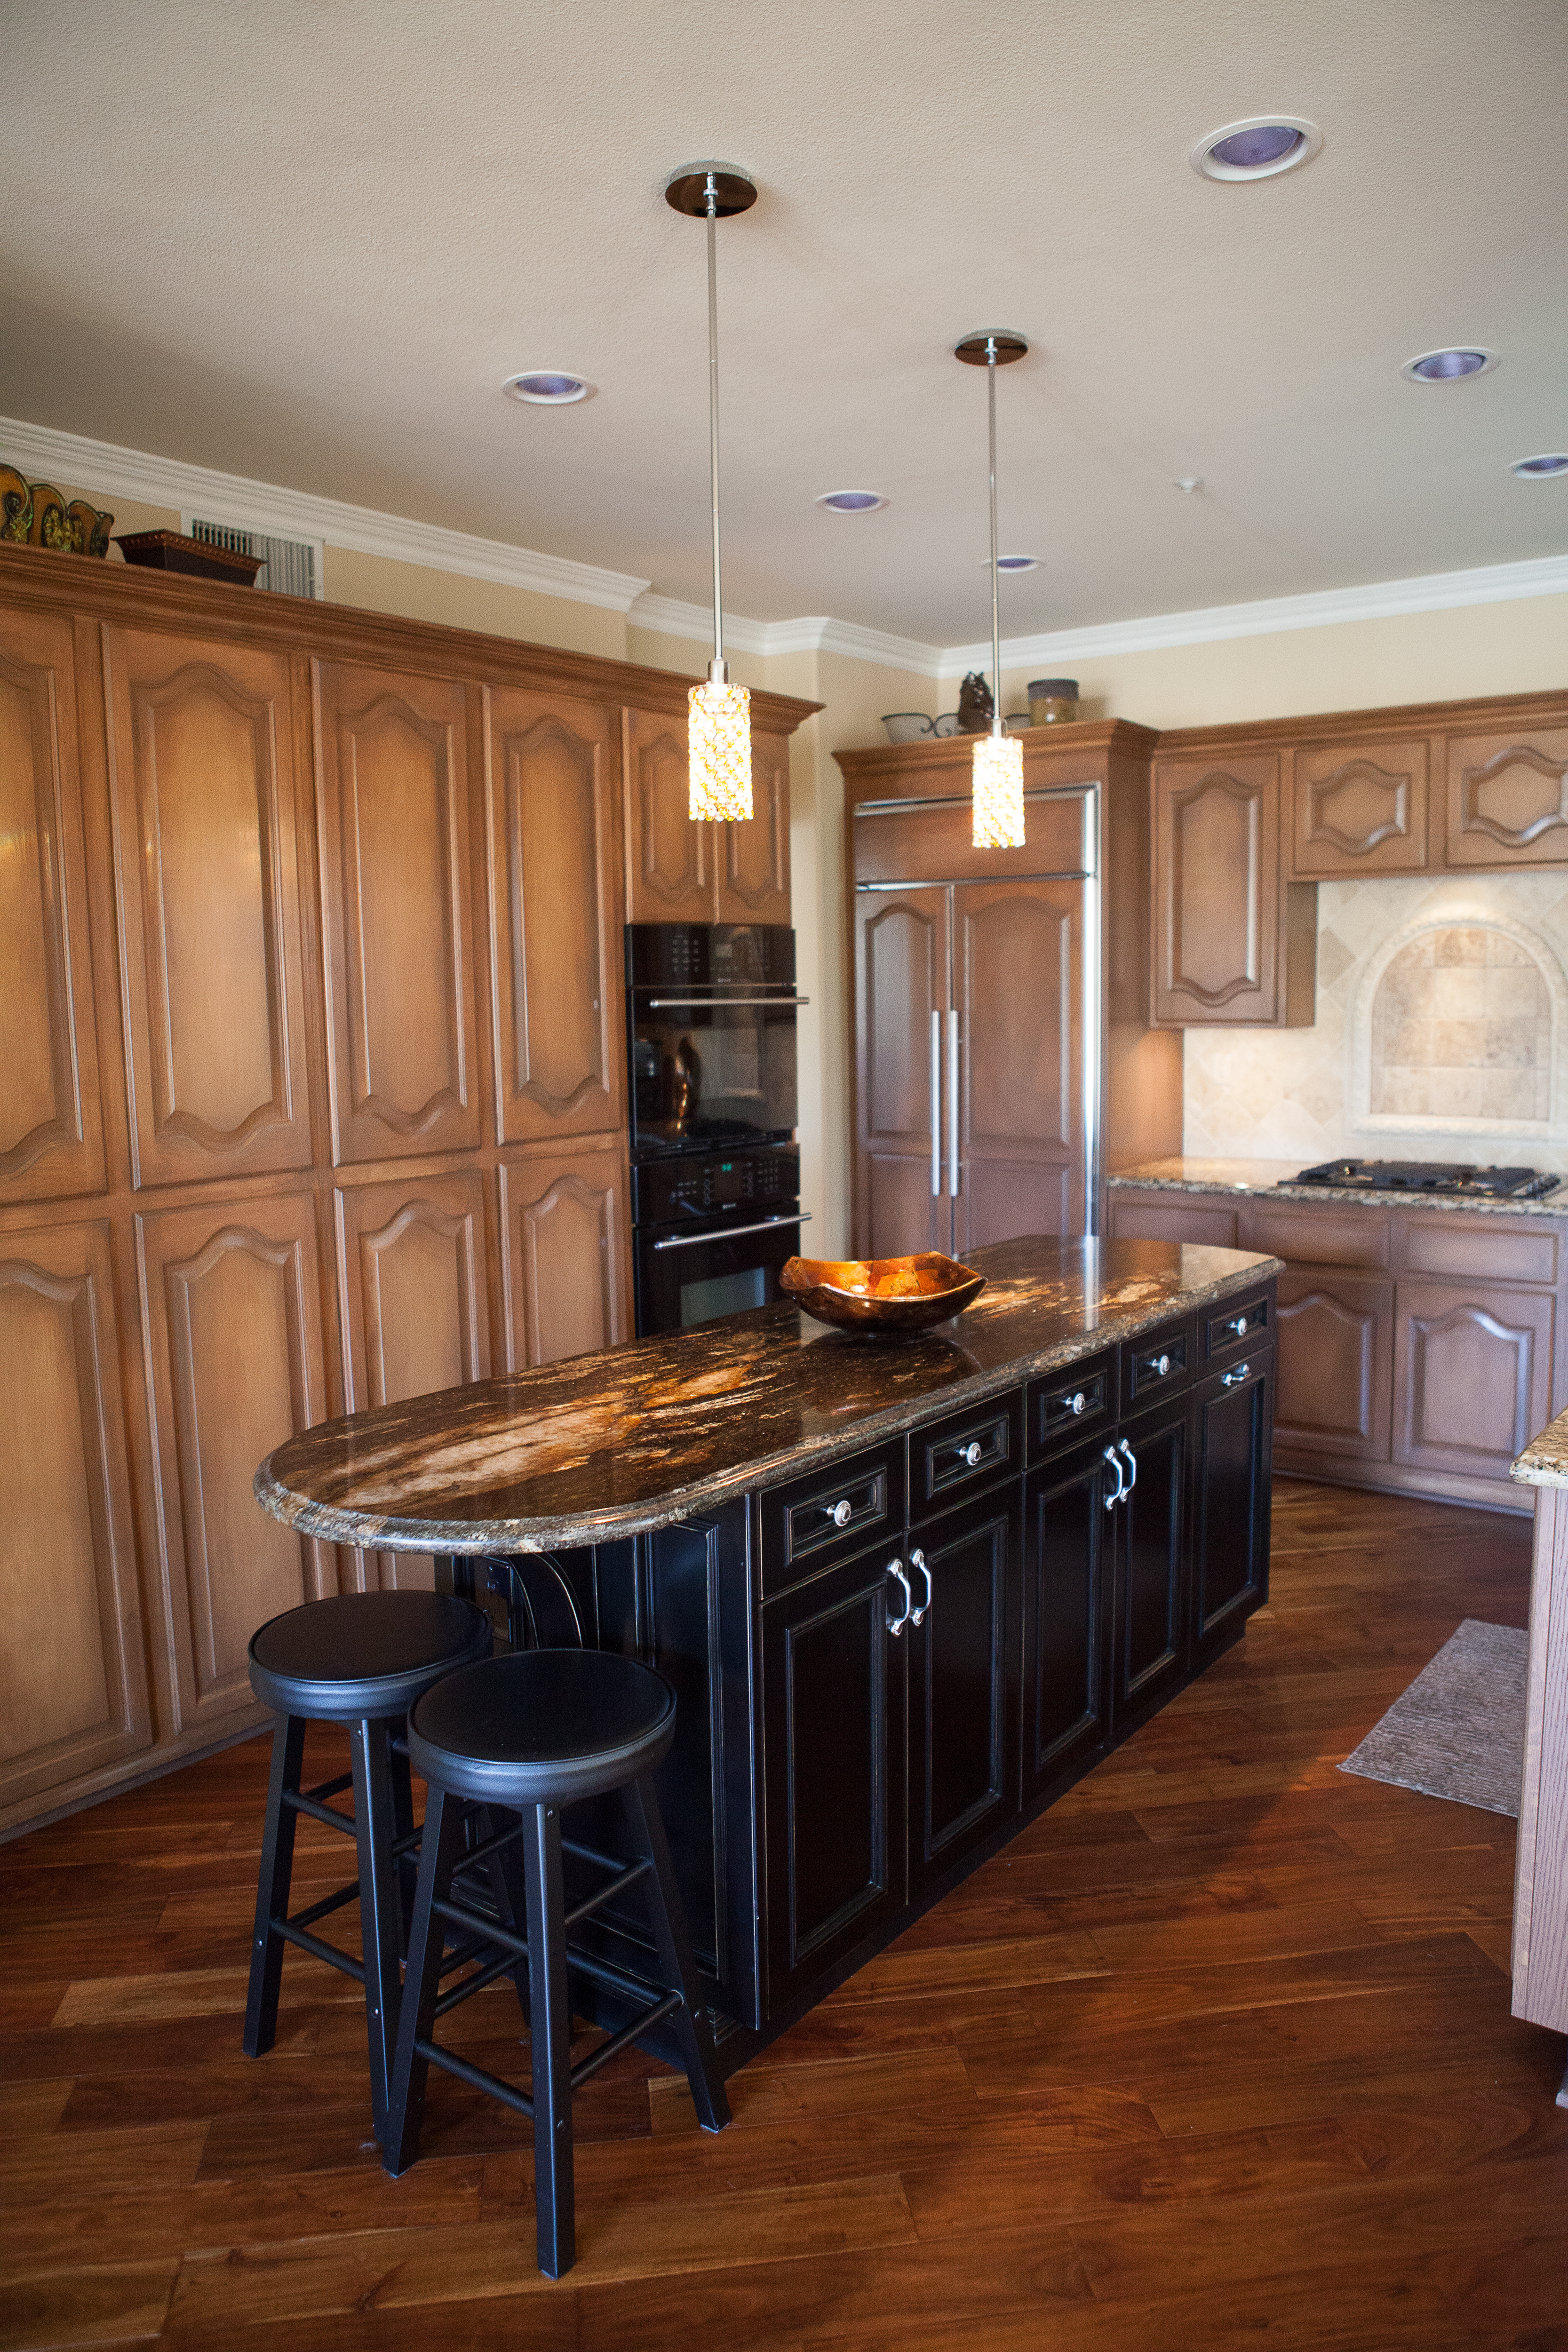 kitchen remodel 1.jpg